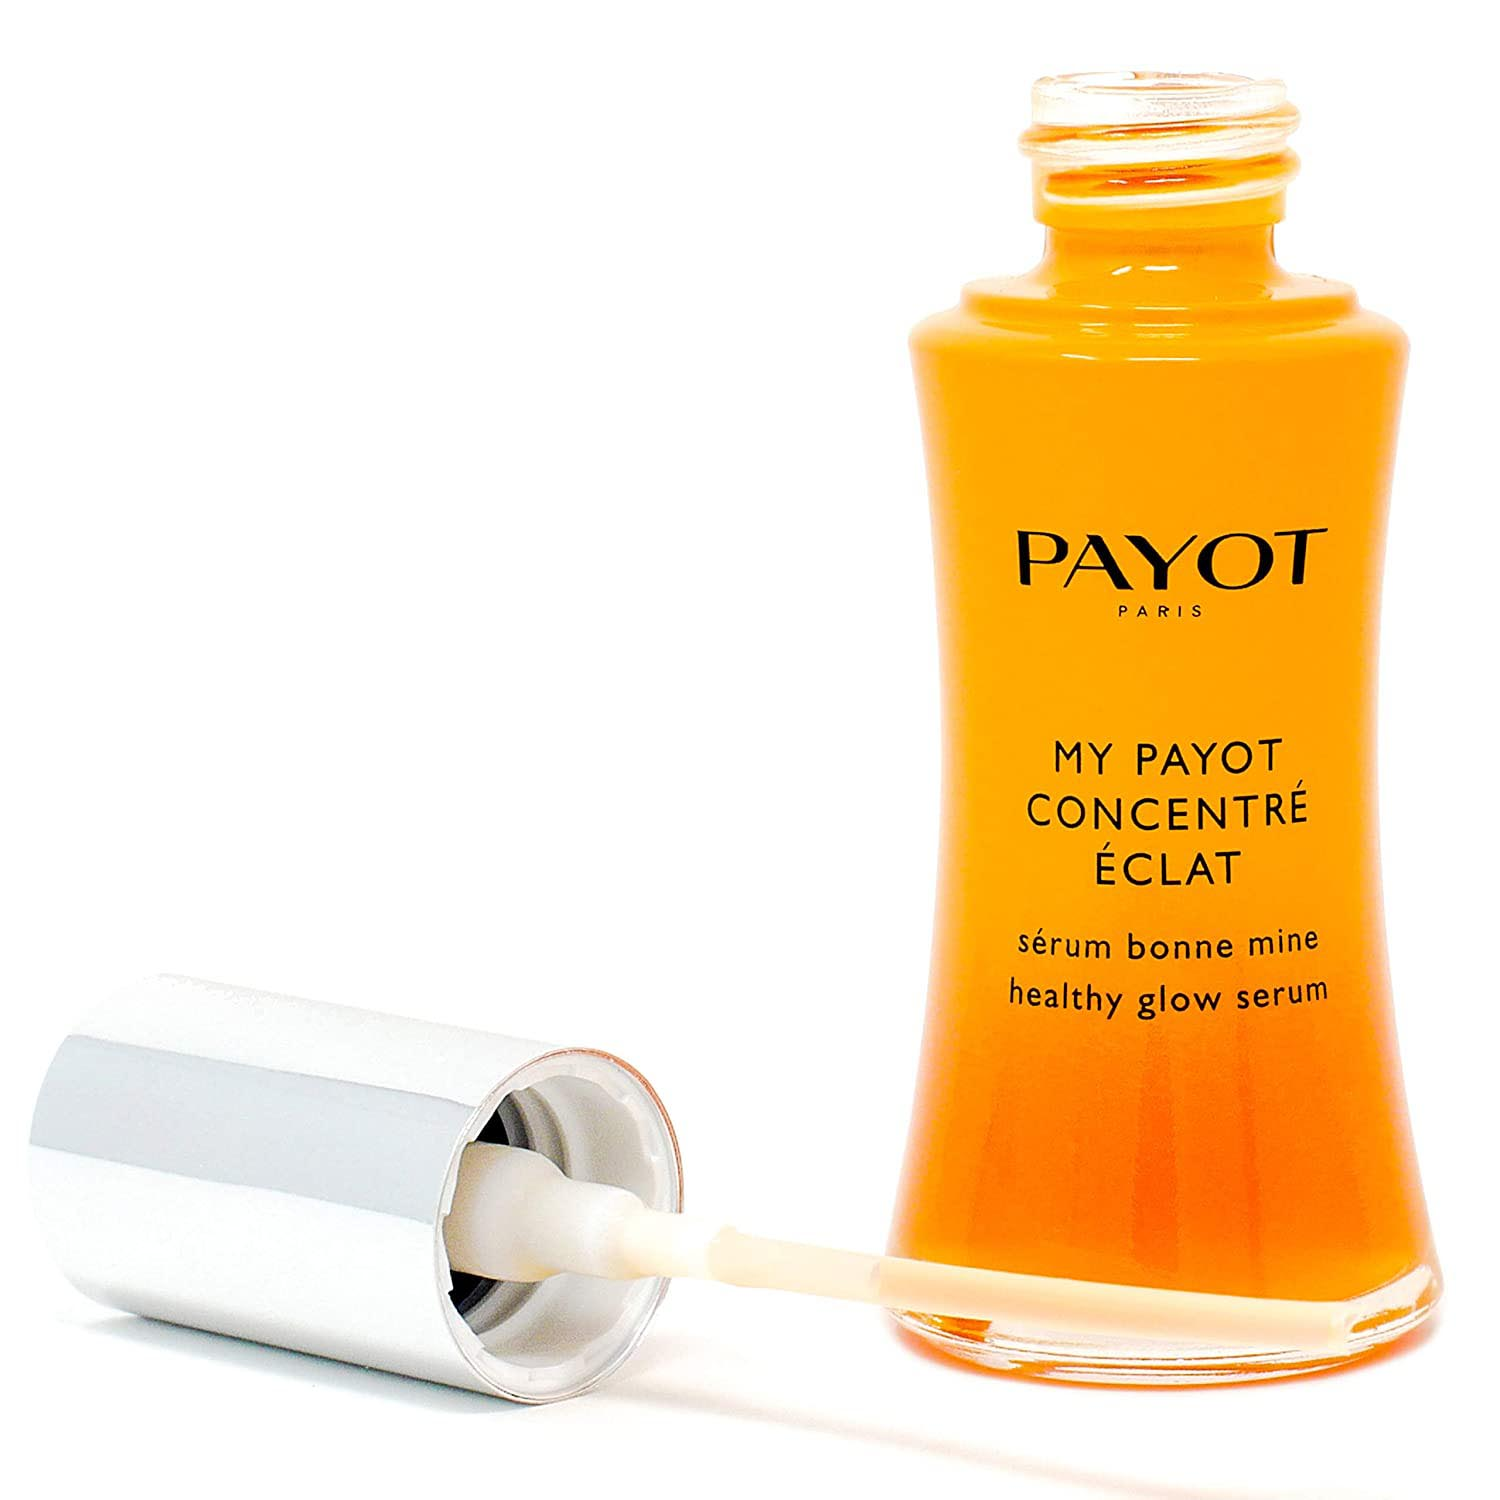 Payot my payot concentre eclat glow serum 30ml